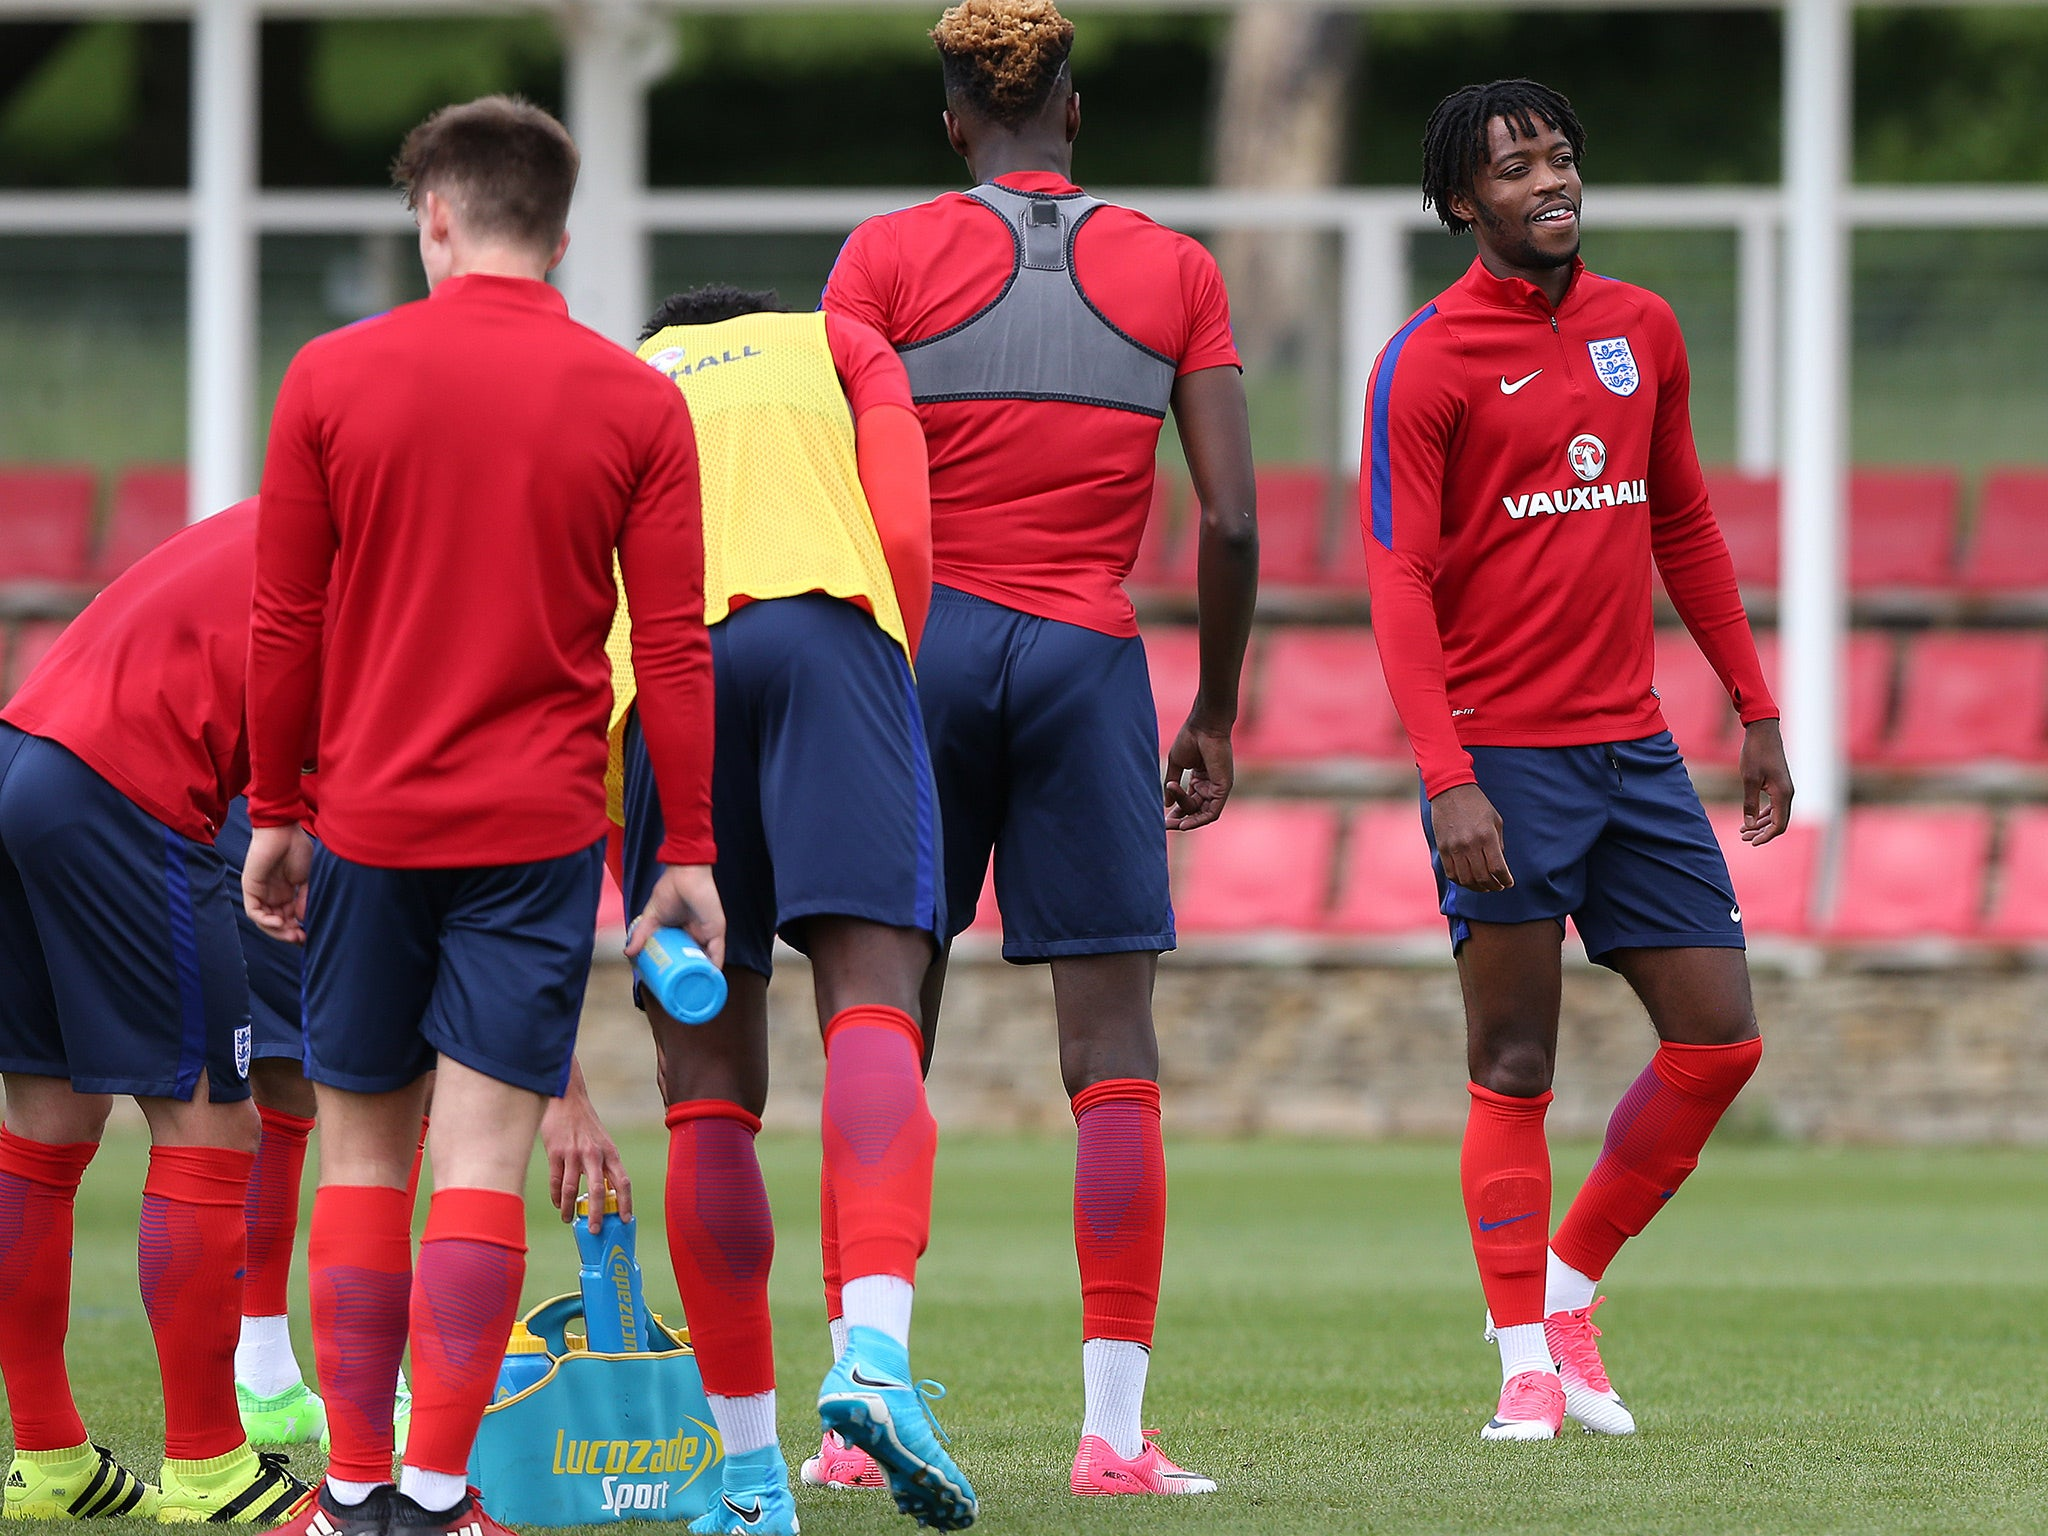 Sweden U21 vs England U21: What time is kick off, where can I watch it live, prediction, odds